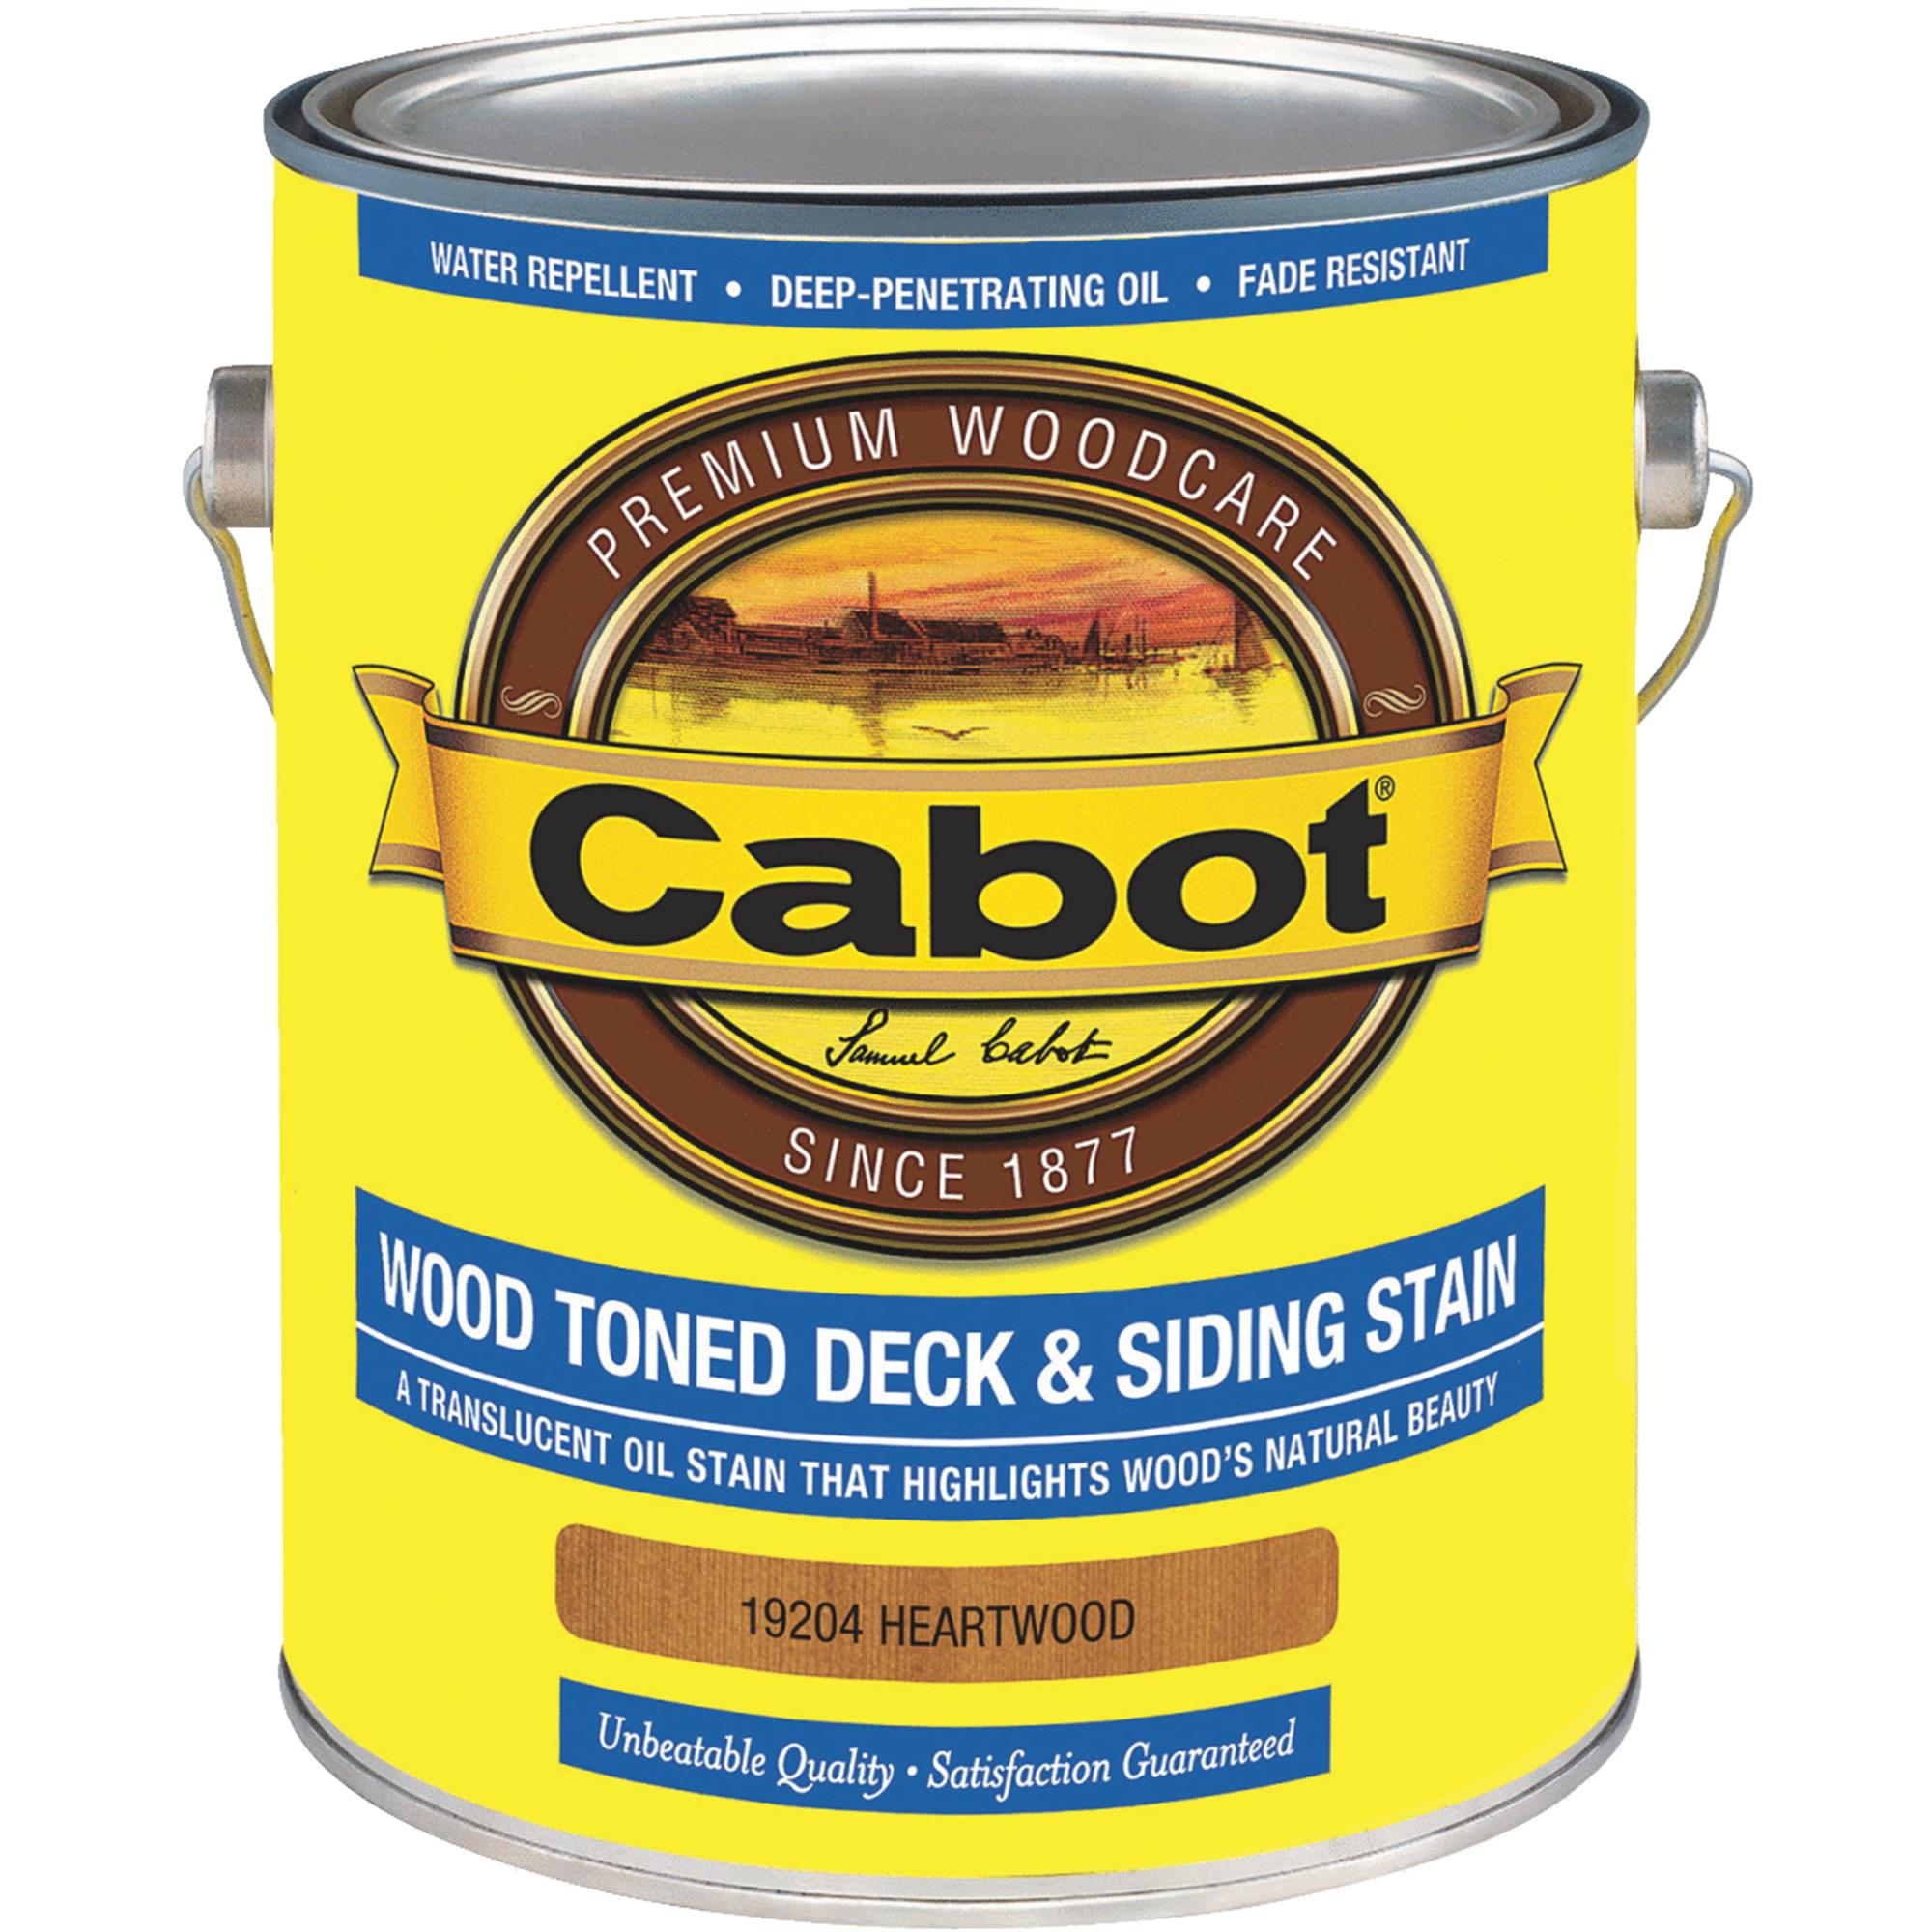 Cabot VOC Wood Toned Deck & Siding Exterior Stain